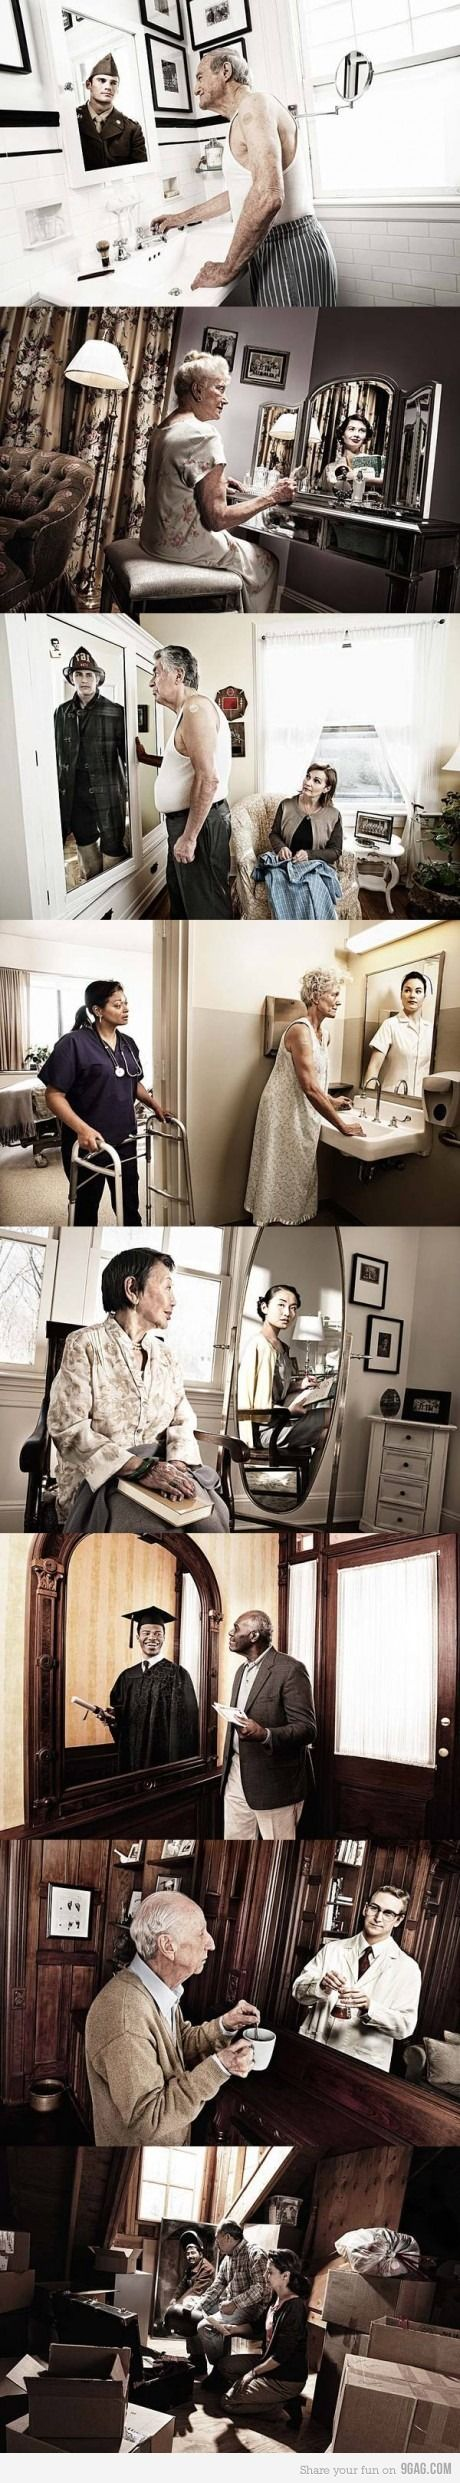 "Novartis ""Reflections"" Campaign - I love this so much"